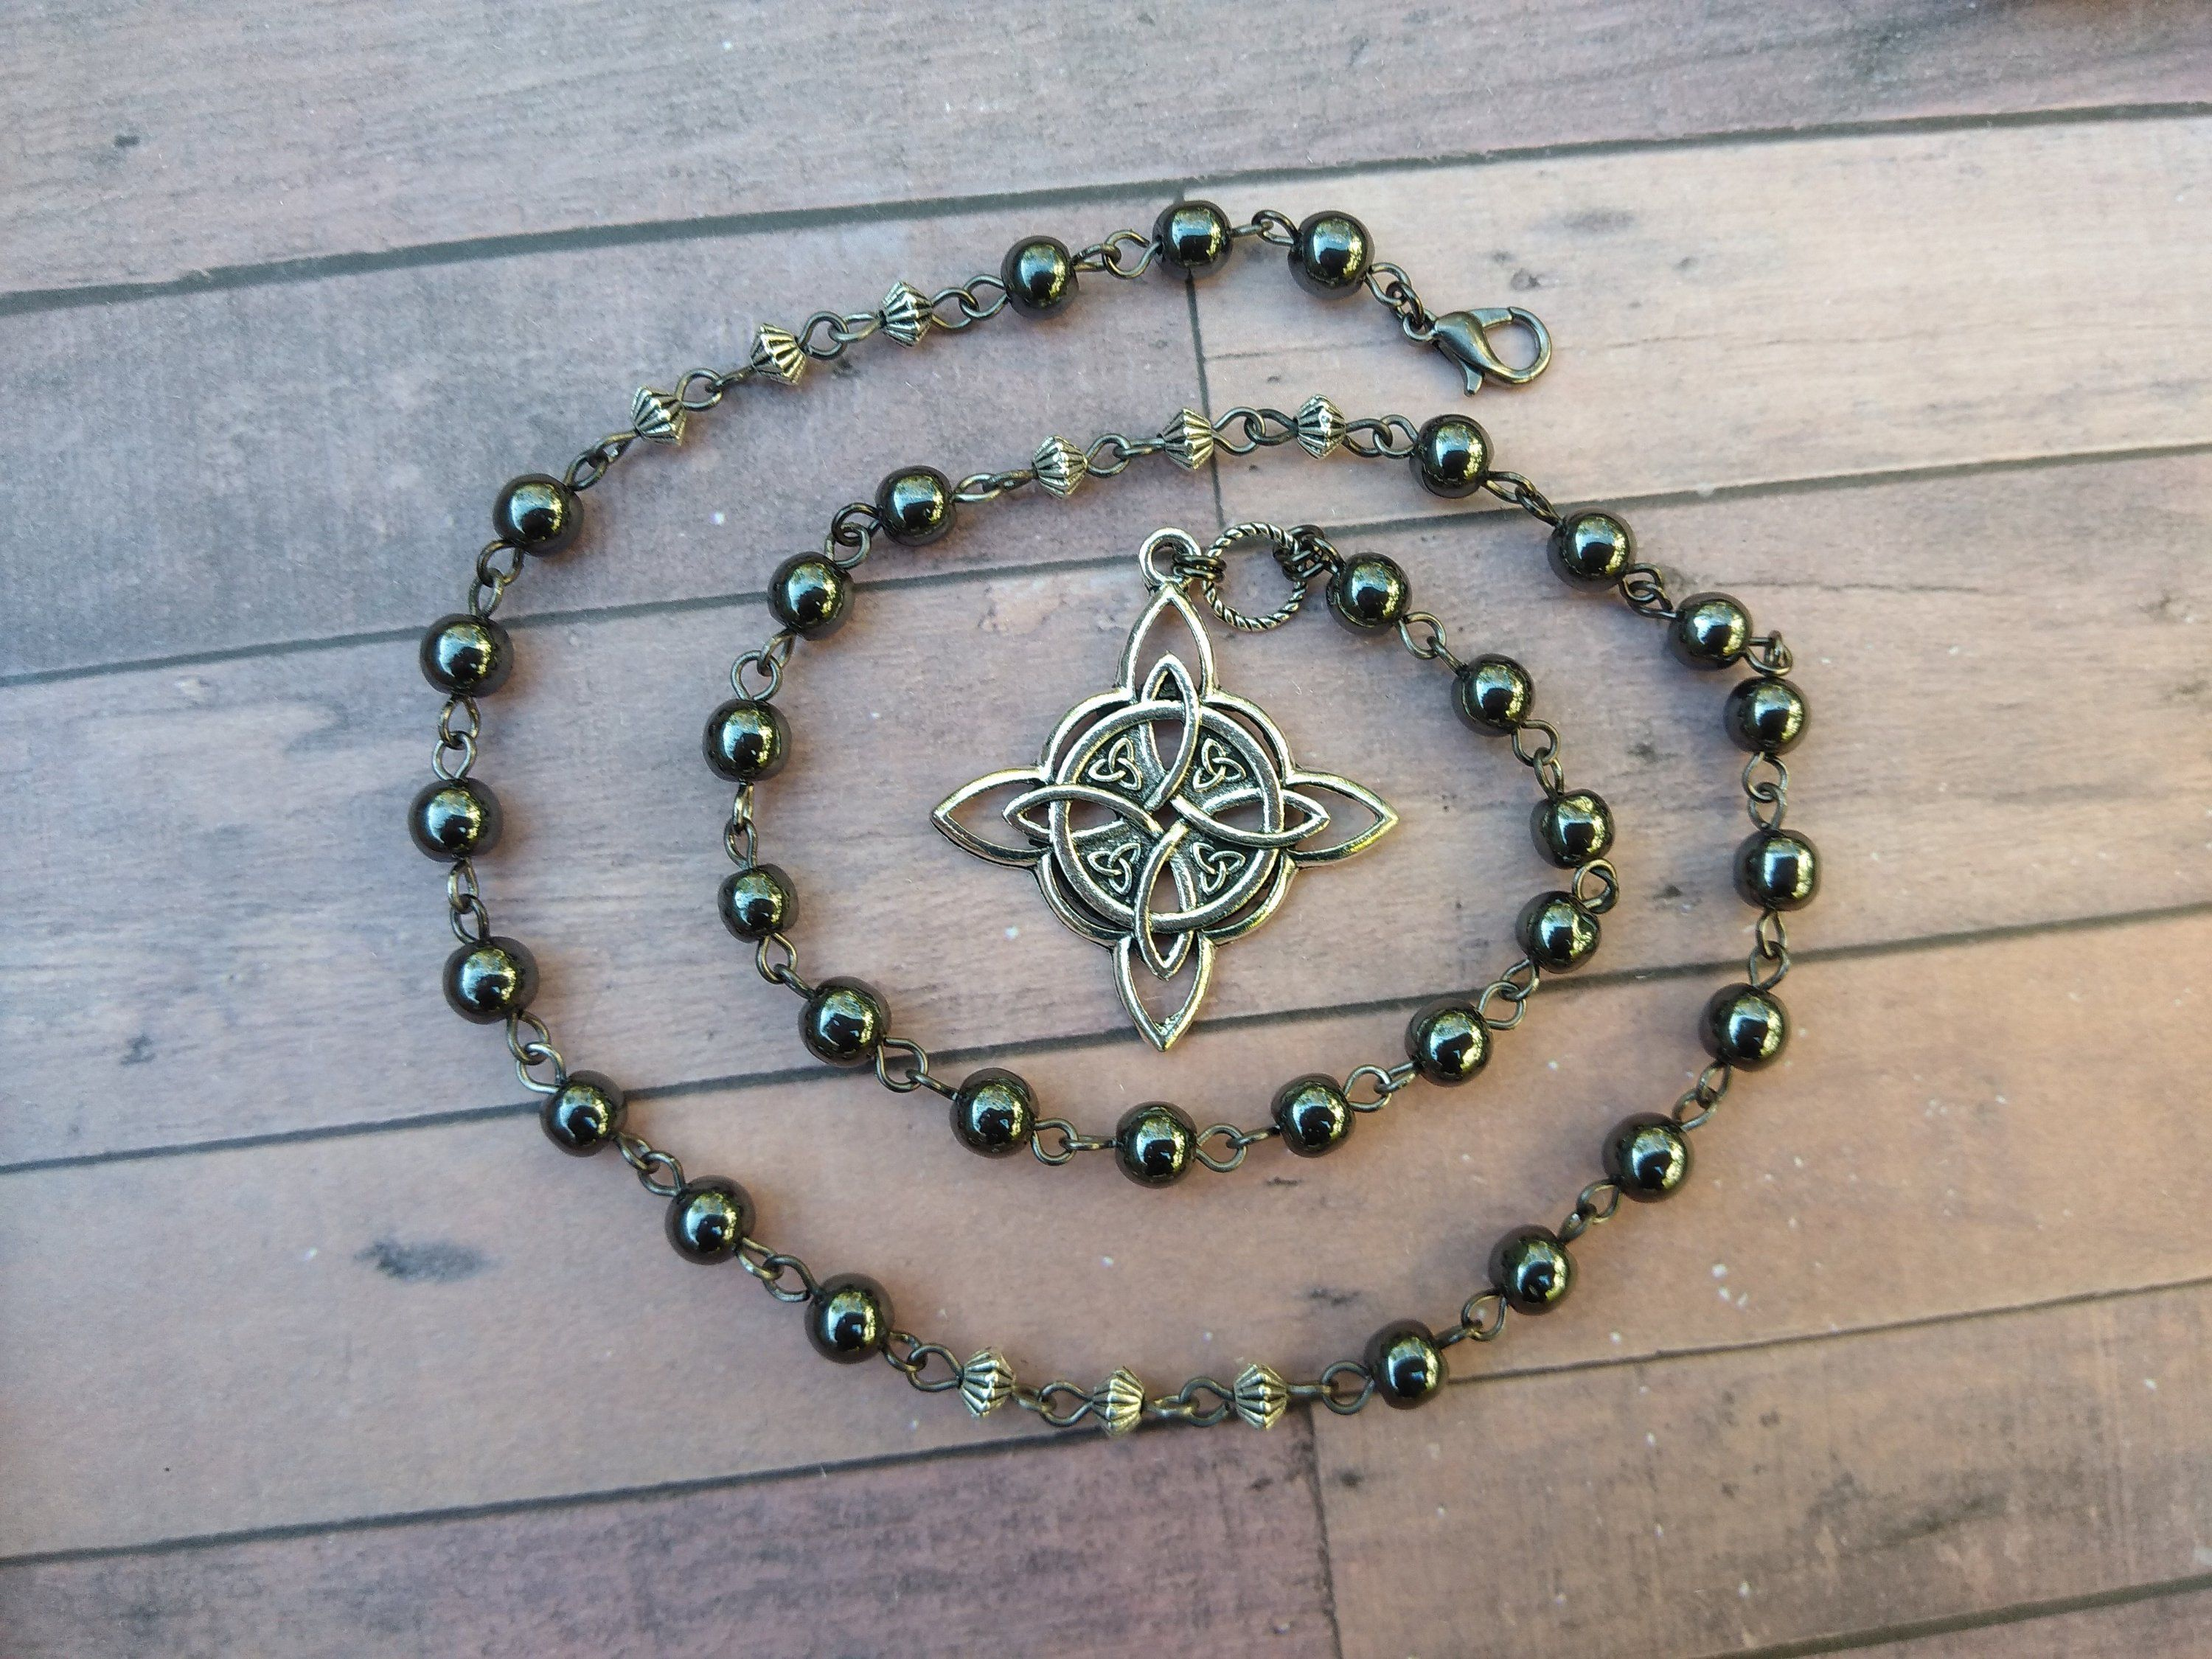 Hematite witches knot pagan prayer beads necklace, grounding